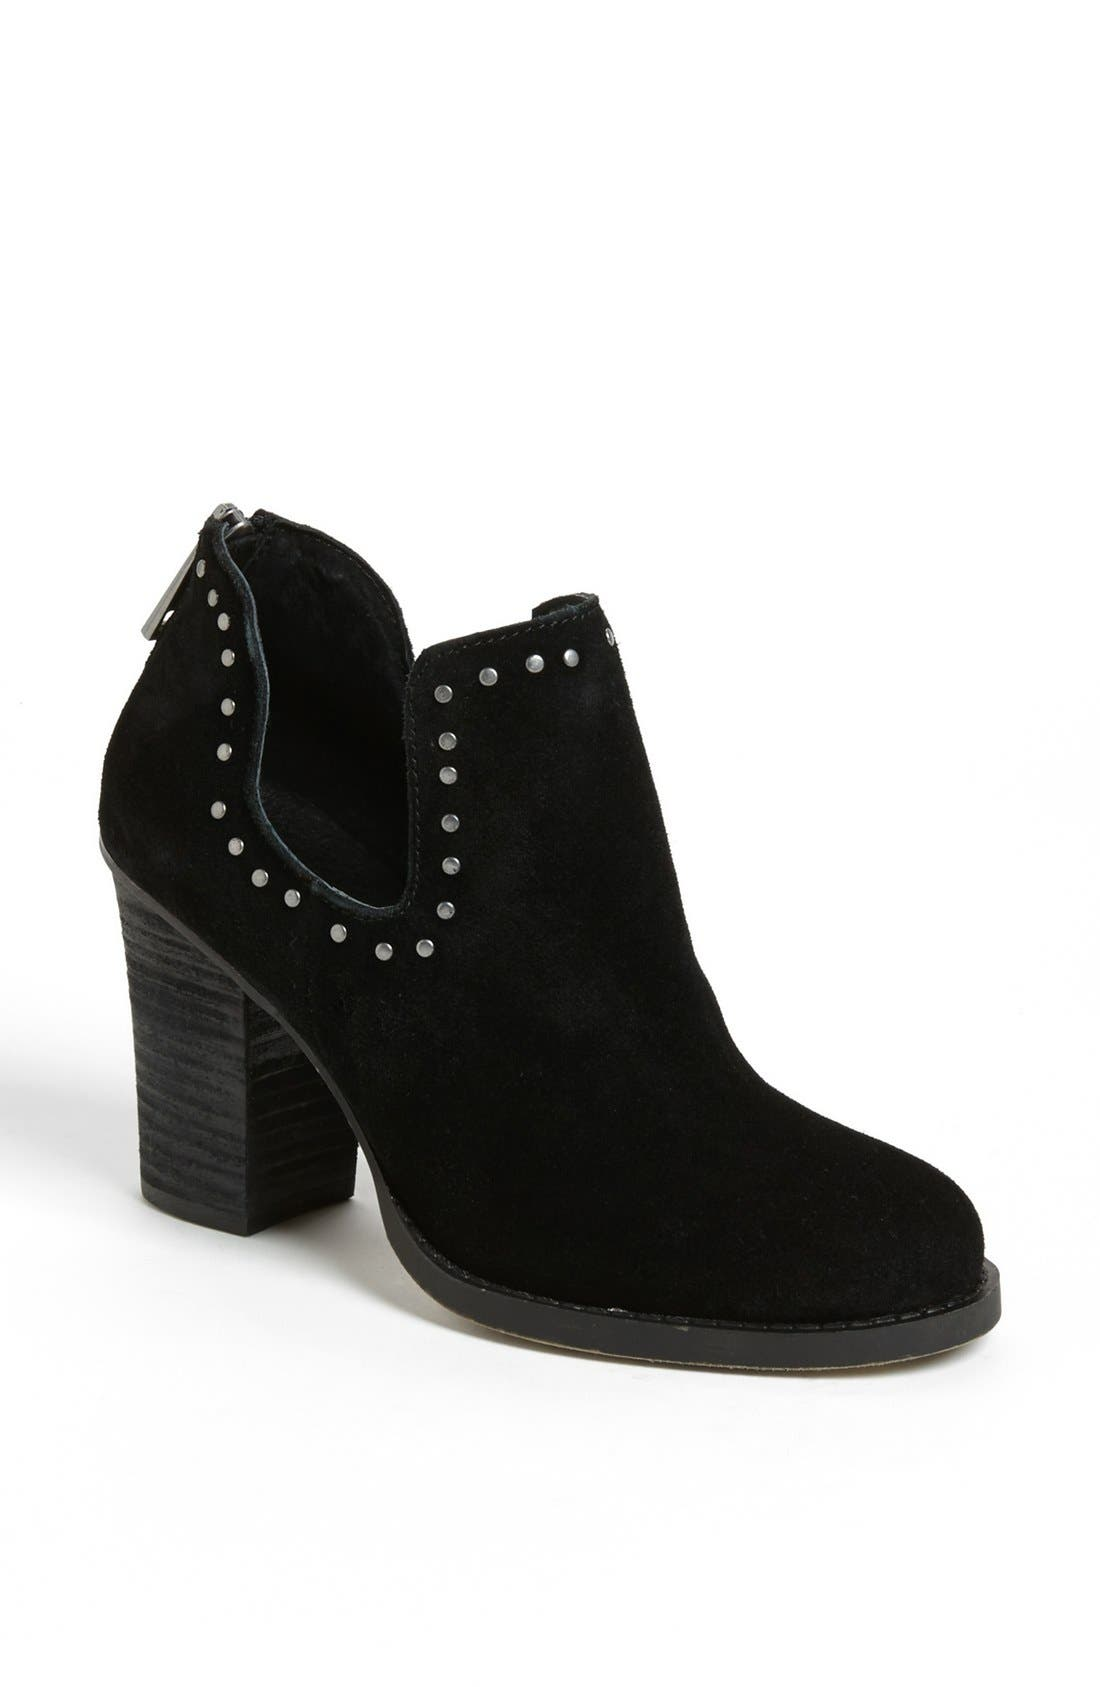 Alternate Image 1 Selected - Chinese Laundry 'Bradyn' Boot (Limited Edition)